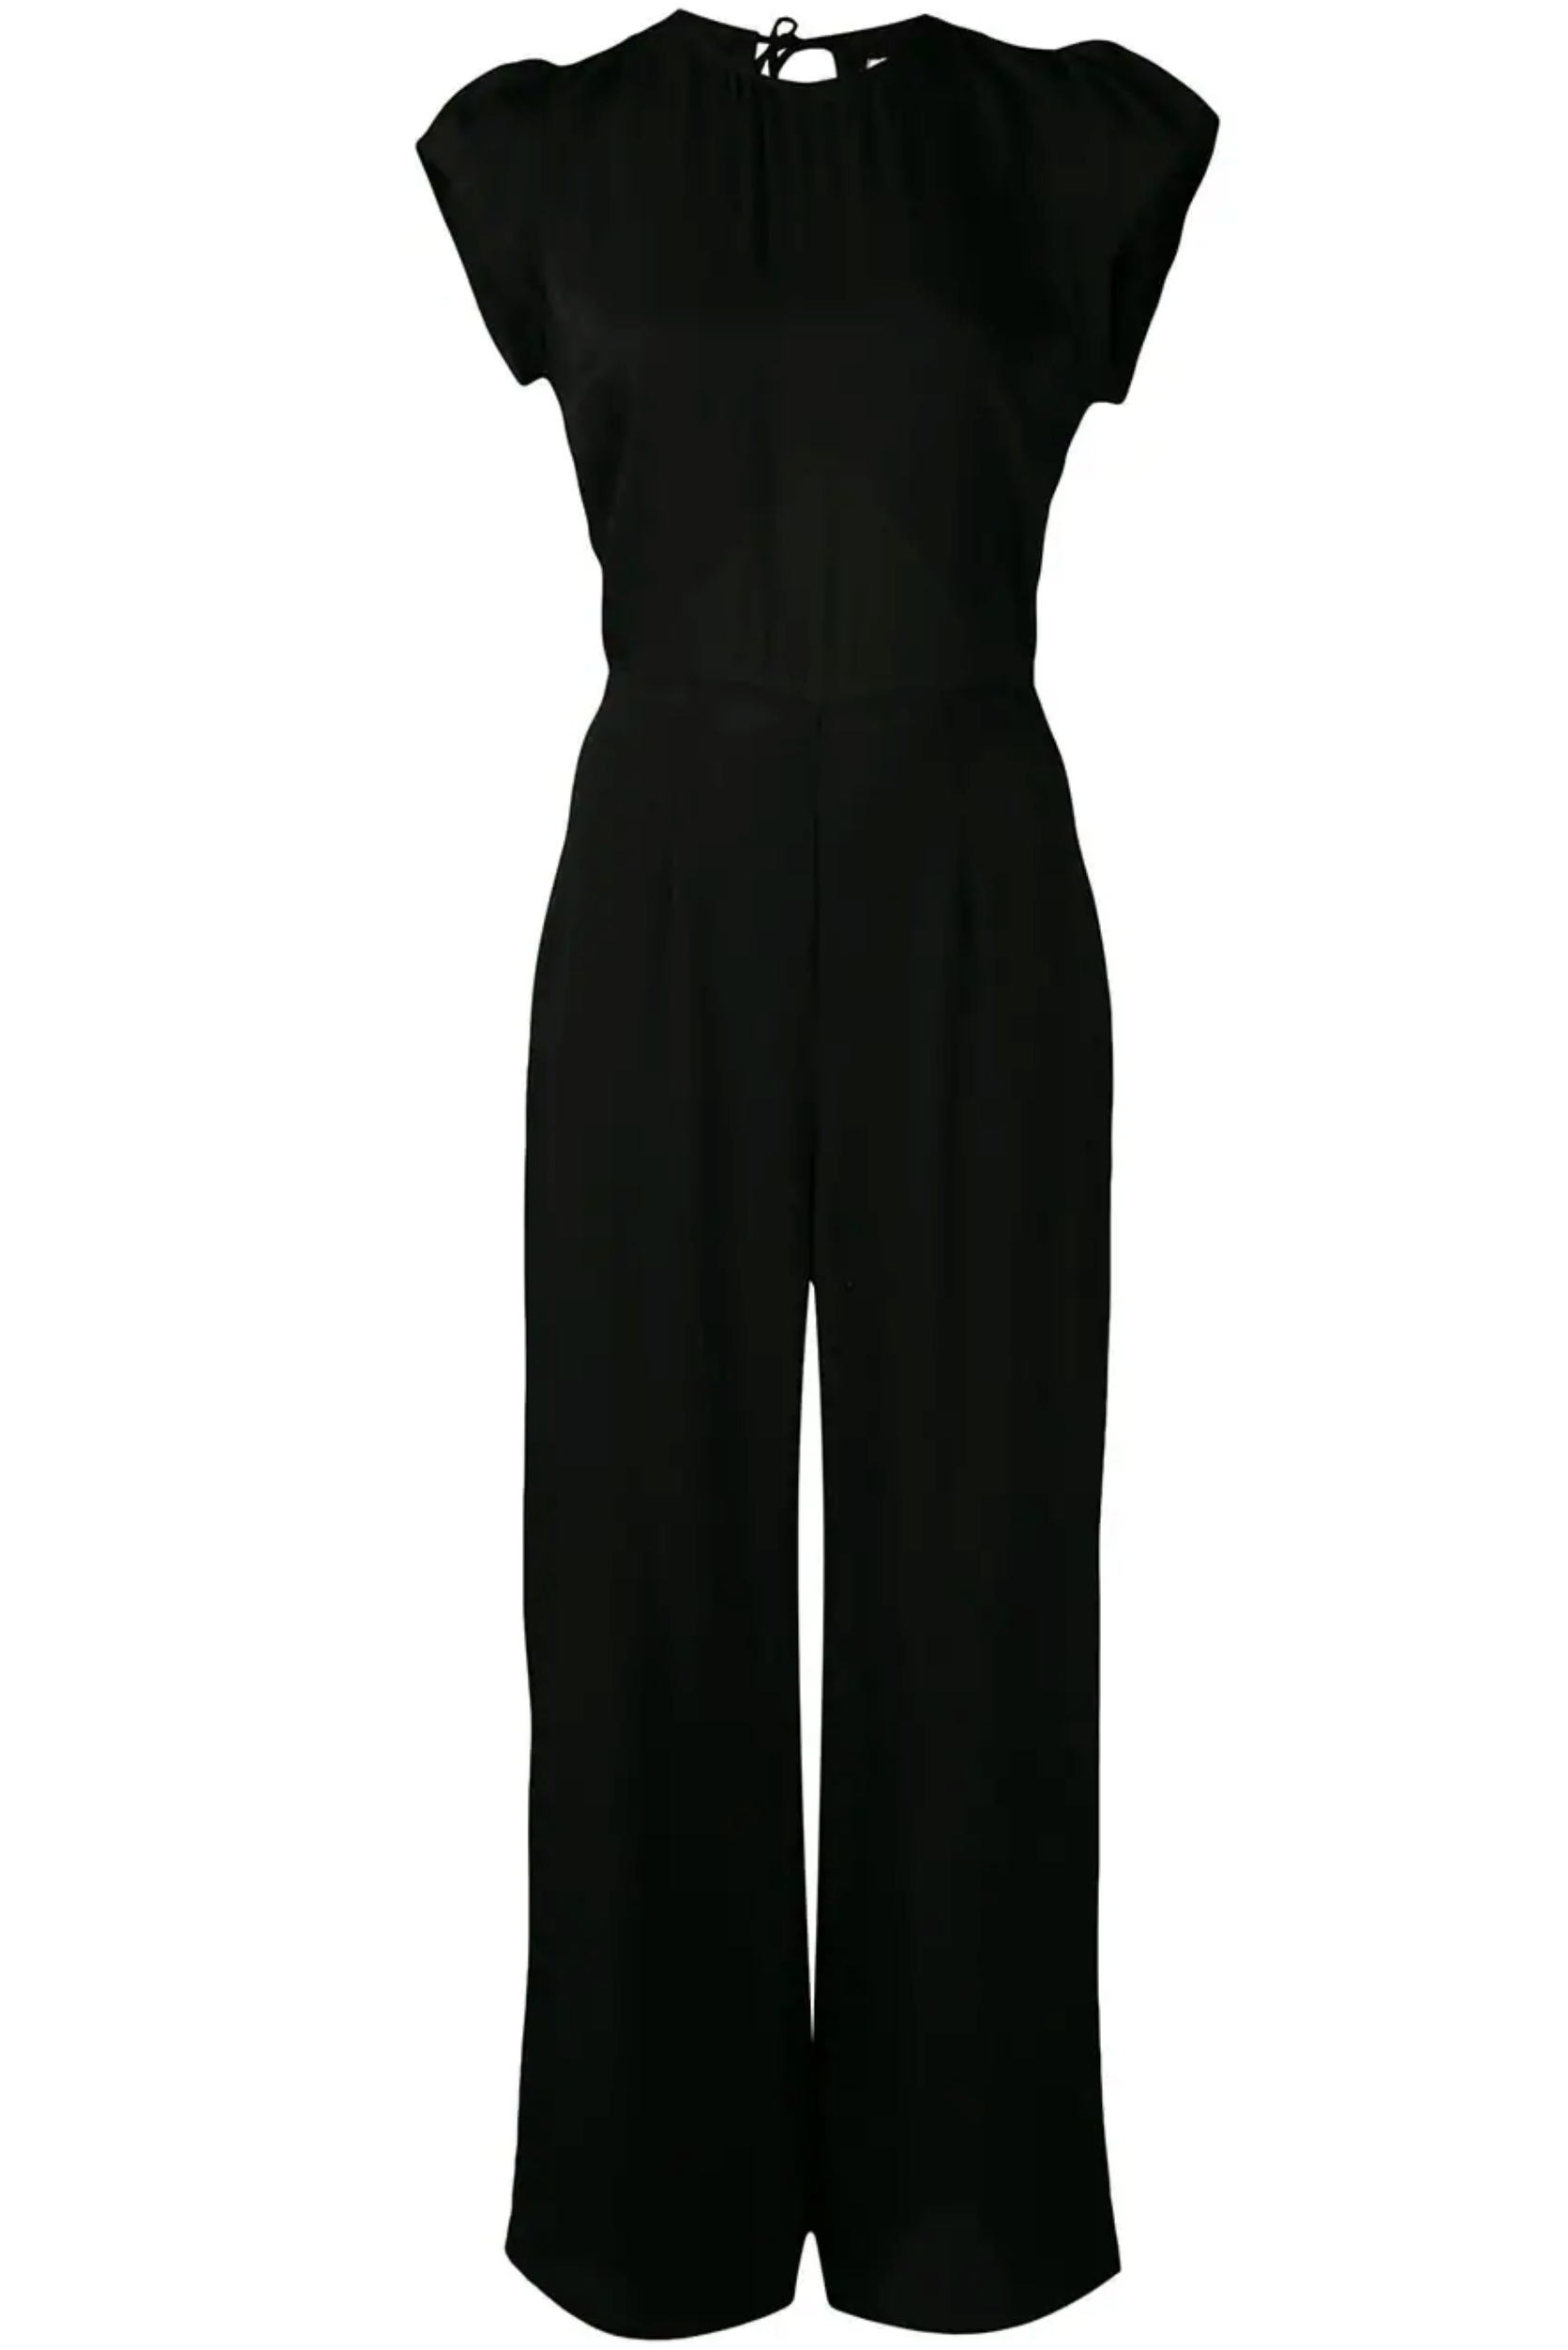 Reformation - Black Mayer Jumpsuit